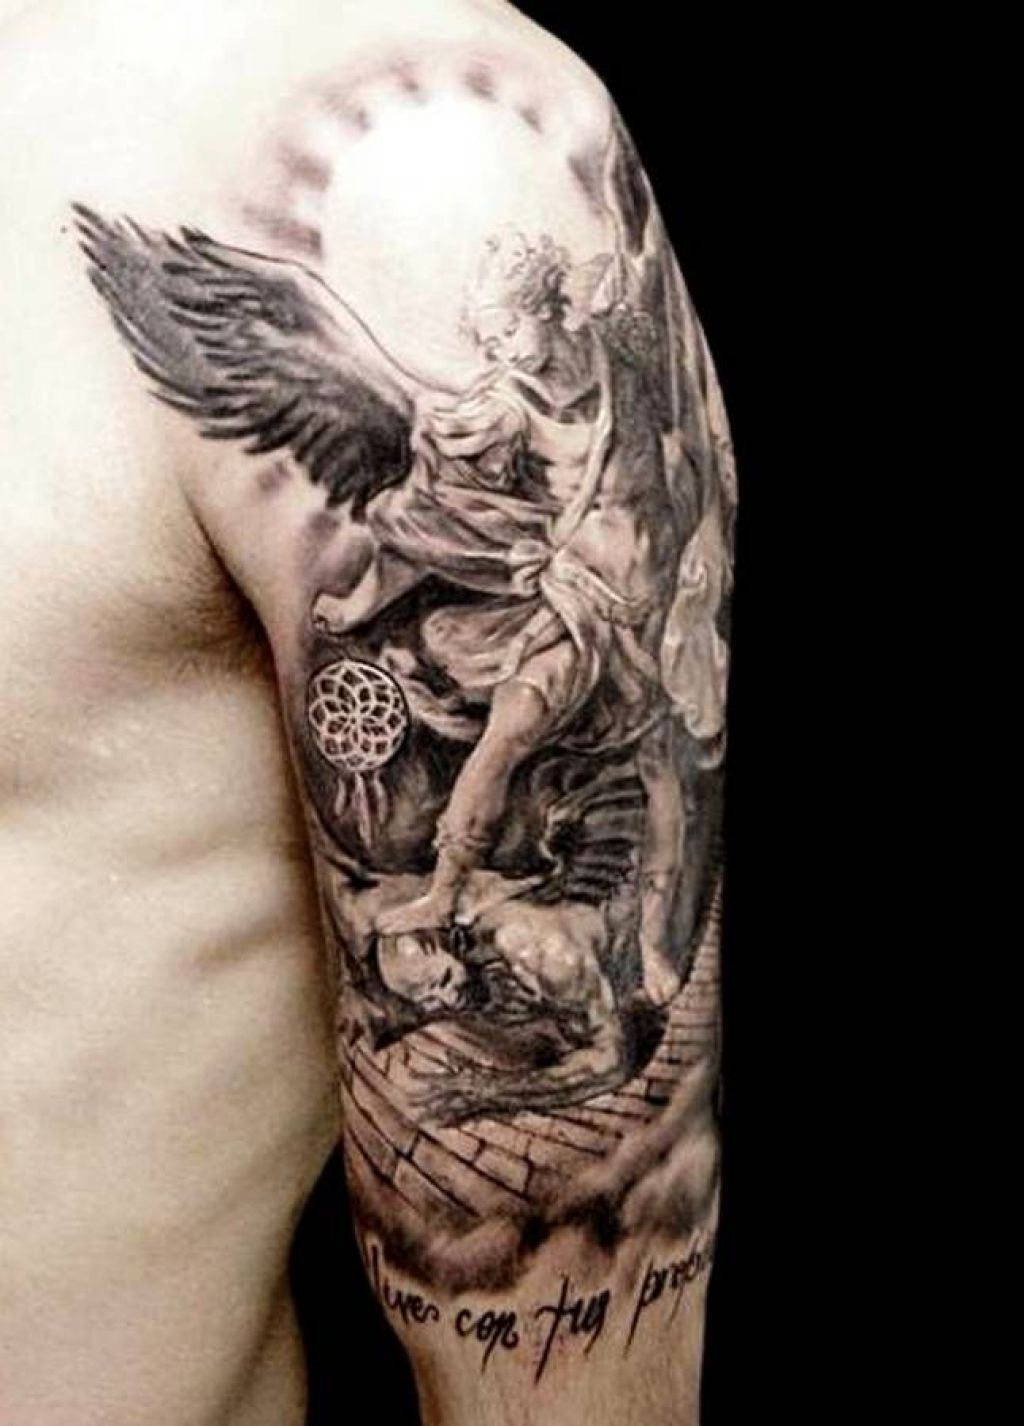 Guardian Angel Arm Tattoos Images Of Guardian Angel Tattoo Arm Ideas pertaining to sizing 1024 X 1426